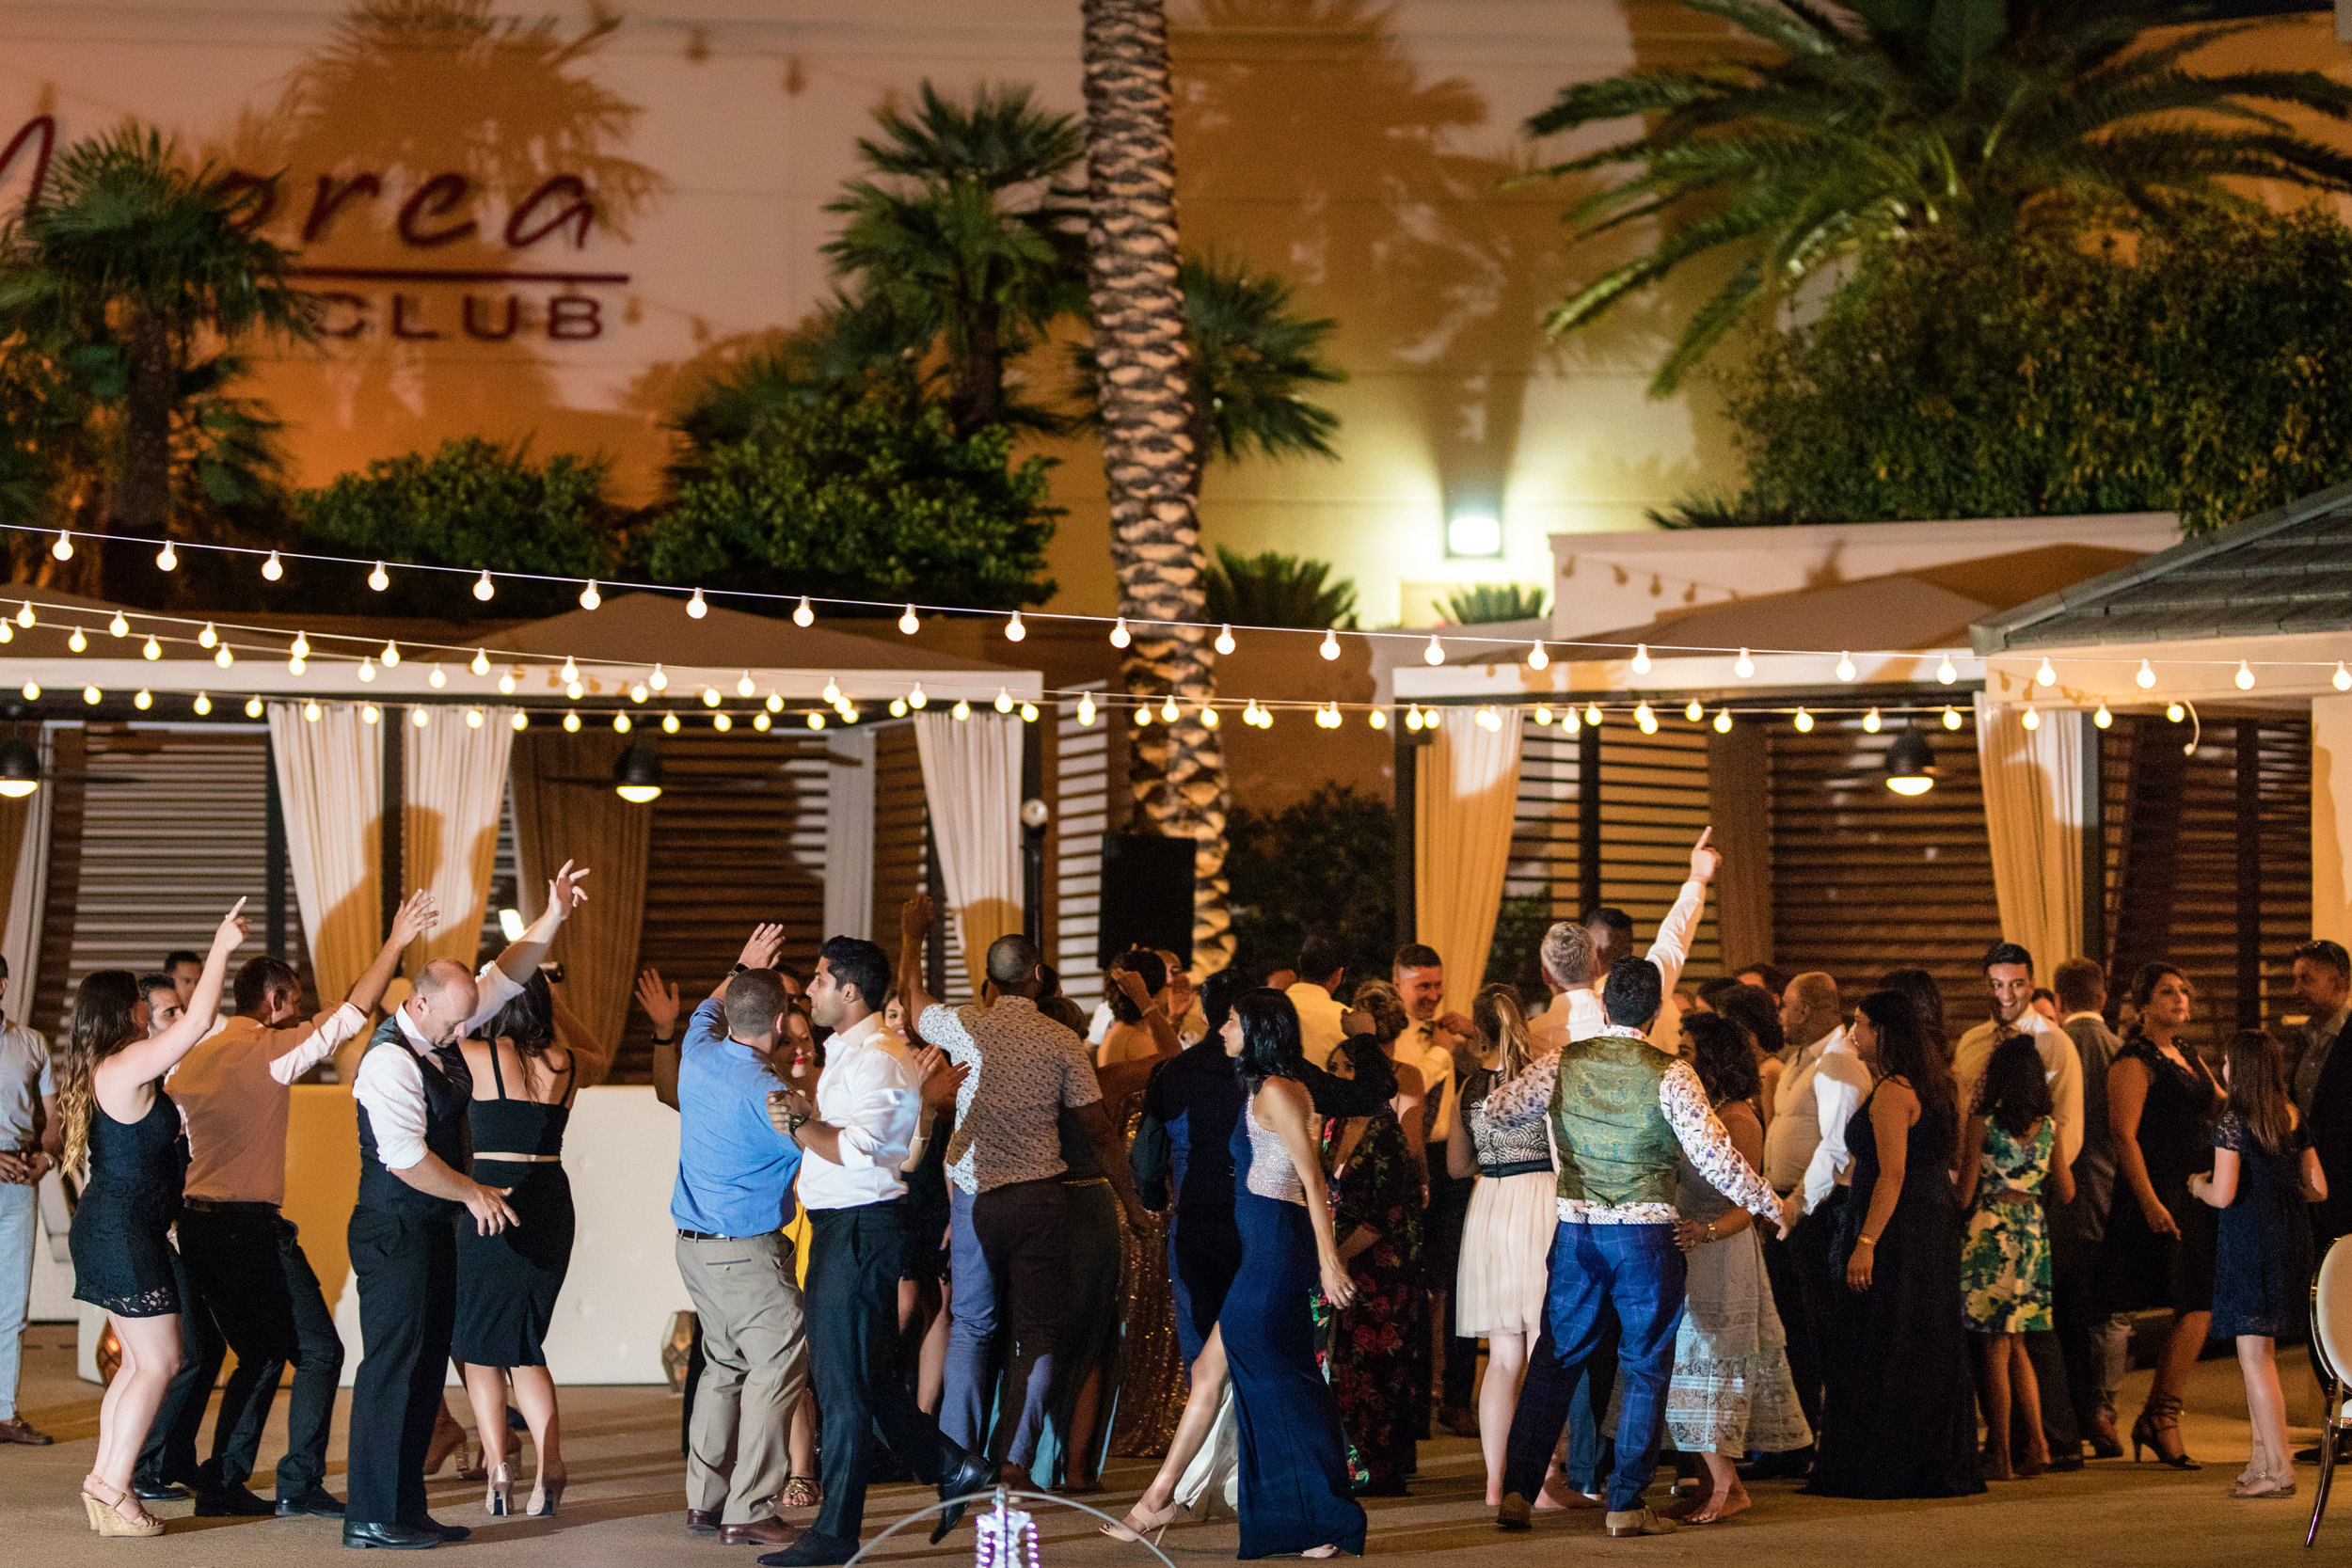 Dance Party on the pool deck.Wedding Planning by  Andrea Eppolito Events  · Photography by  Shandro Photo   · Wedding Venue  Four Seasons Las Vegas  · Floral and Decor by  Destination by Design  · Cake by  Four Seasons Las Vegas  · Chandeliers and Lighting by  LED Unplugged  · Dress by  Berta  and Menu by Alligator Soup